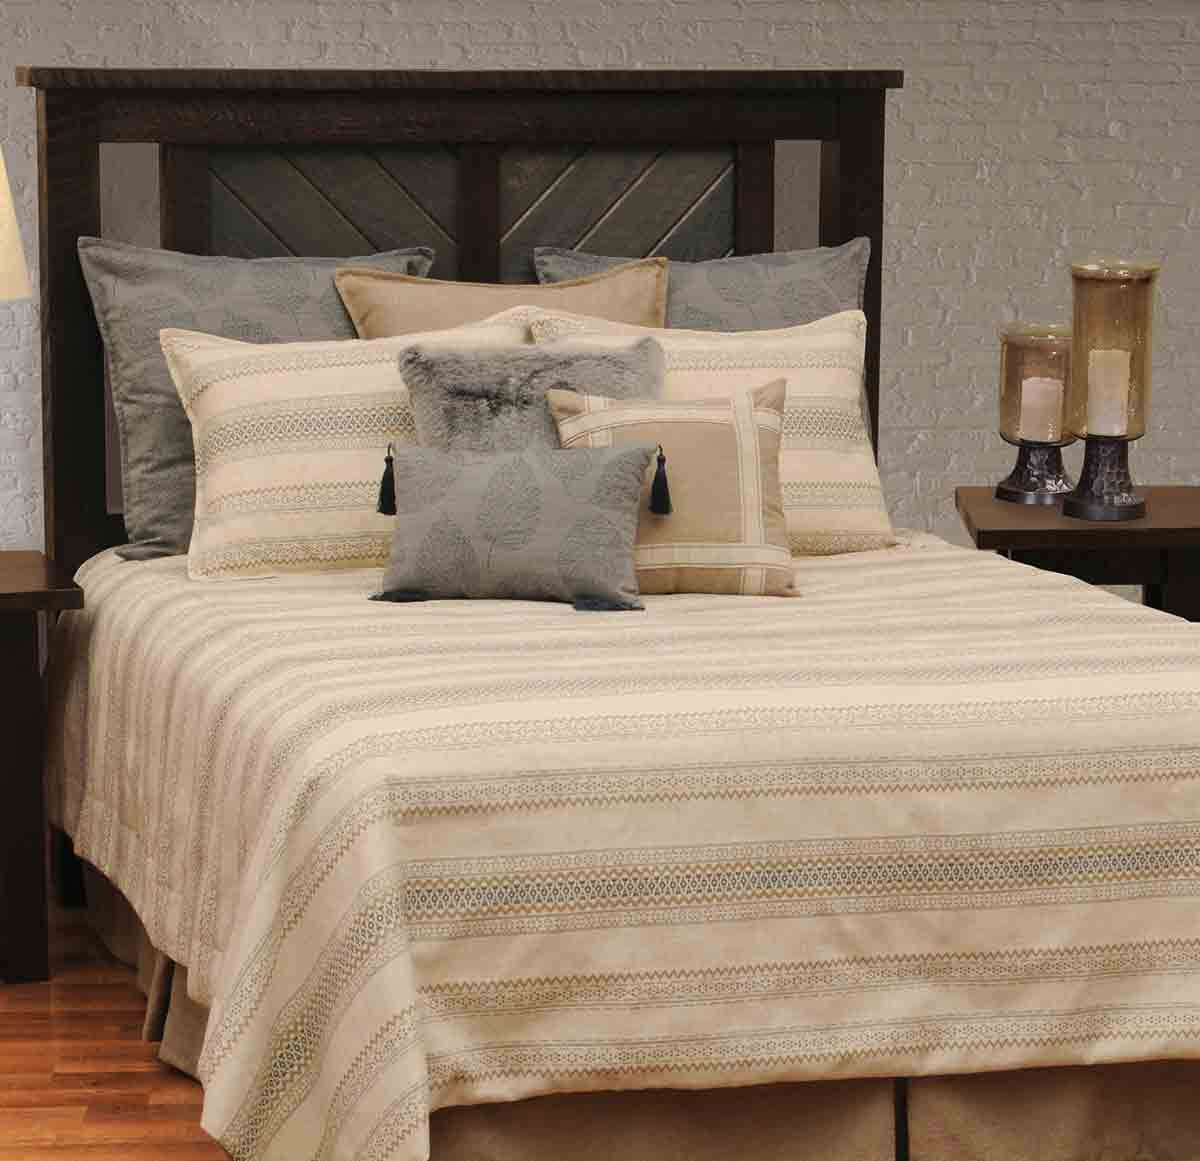 Ava Deluxe Bed Set - King